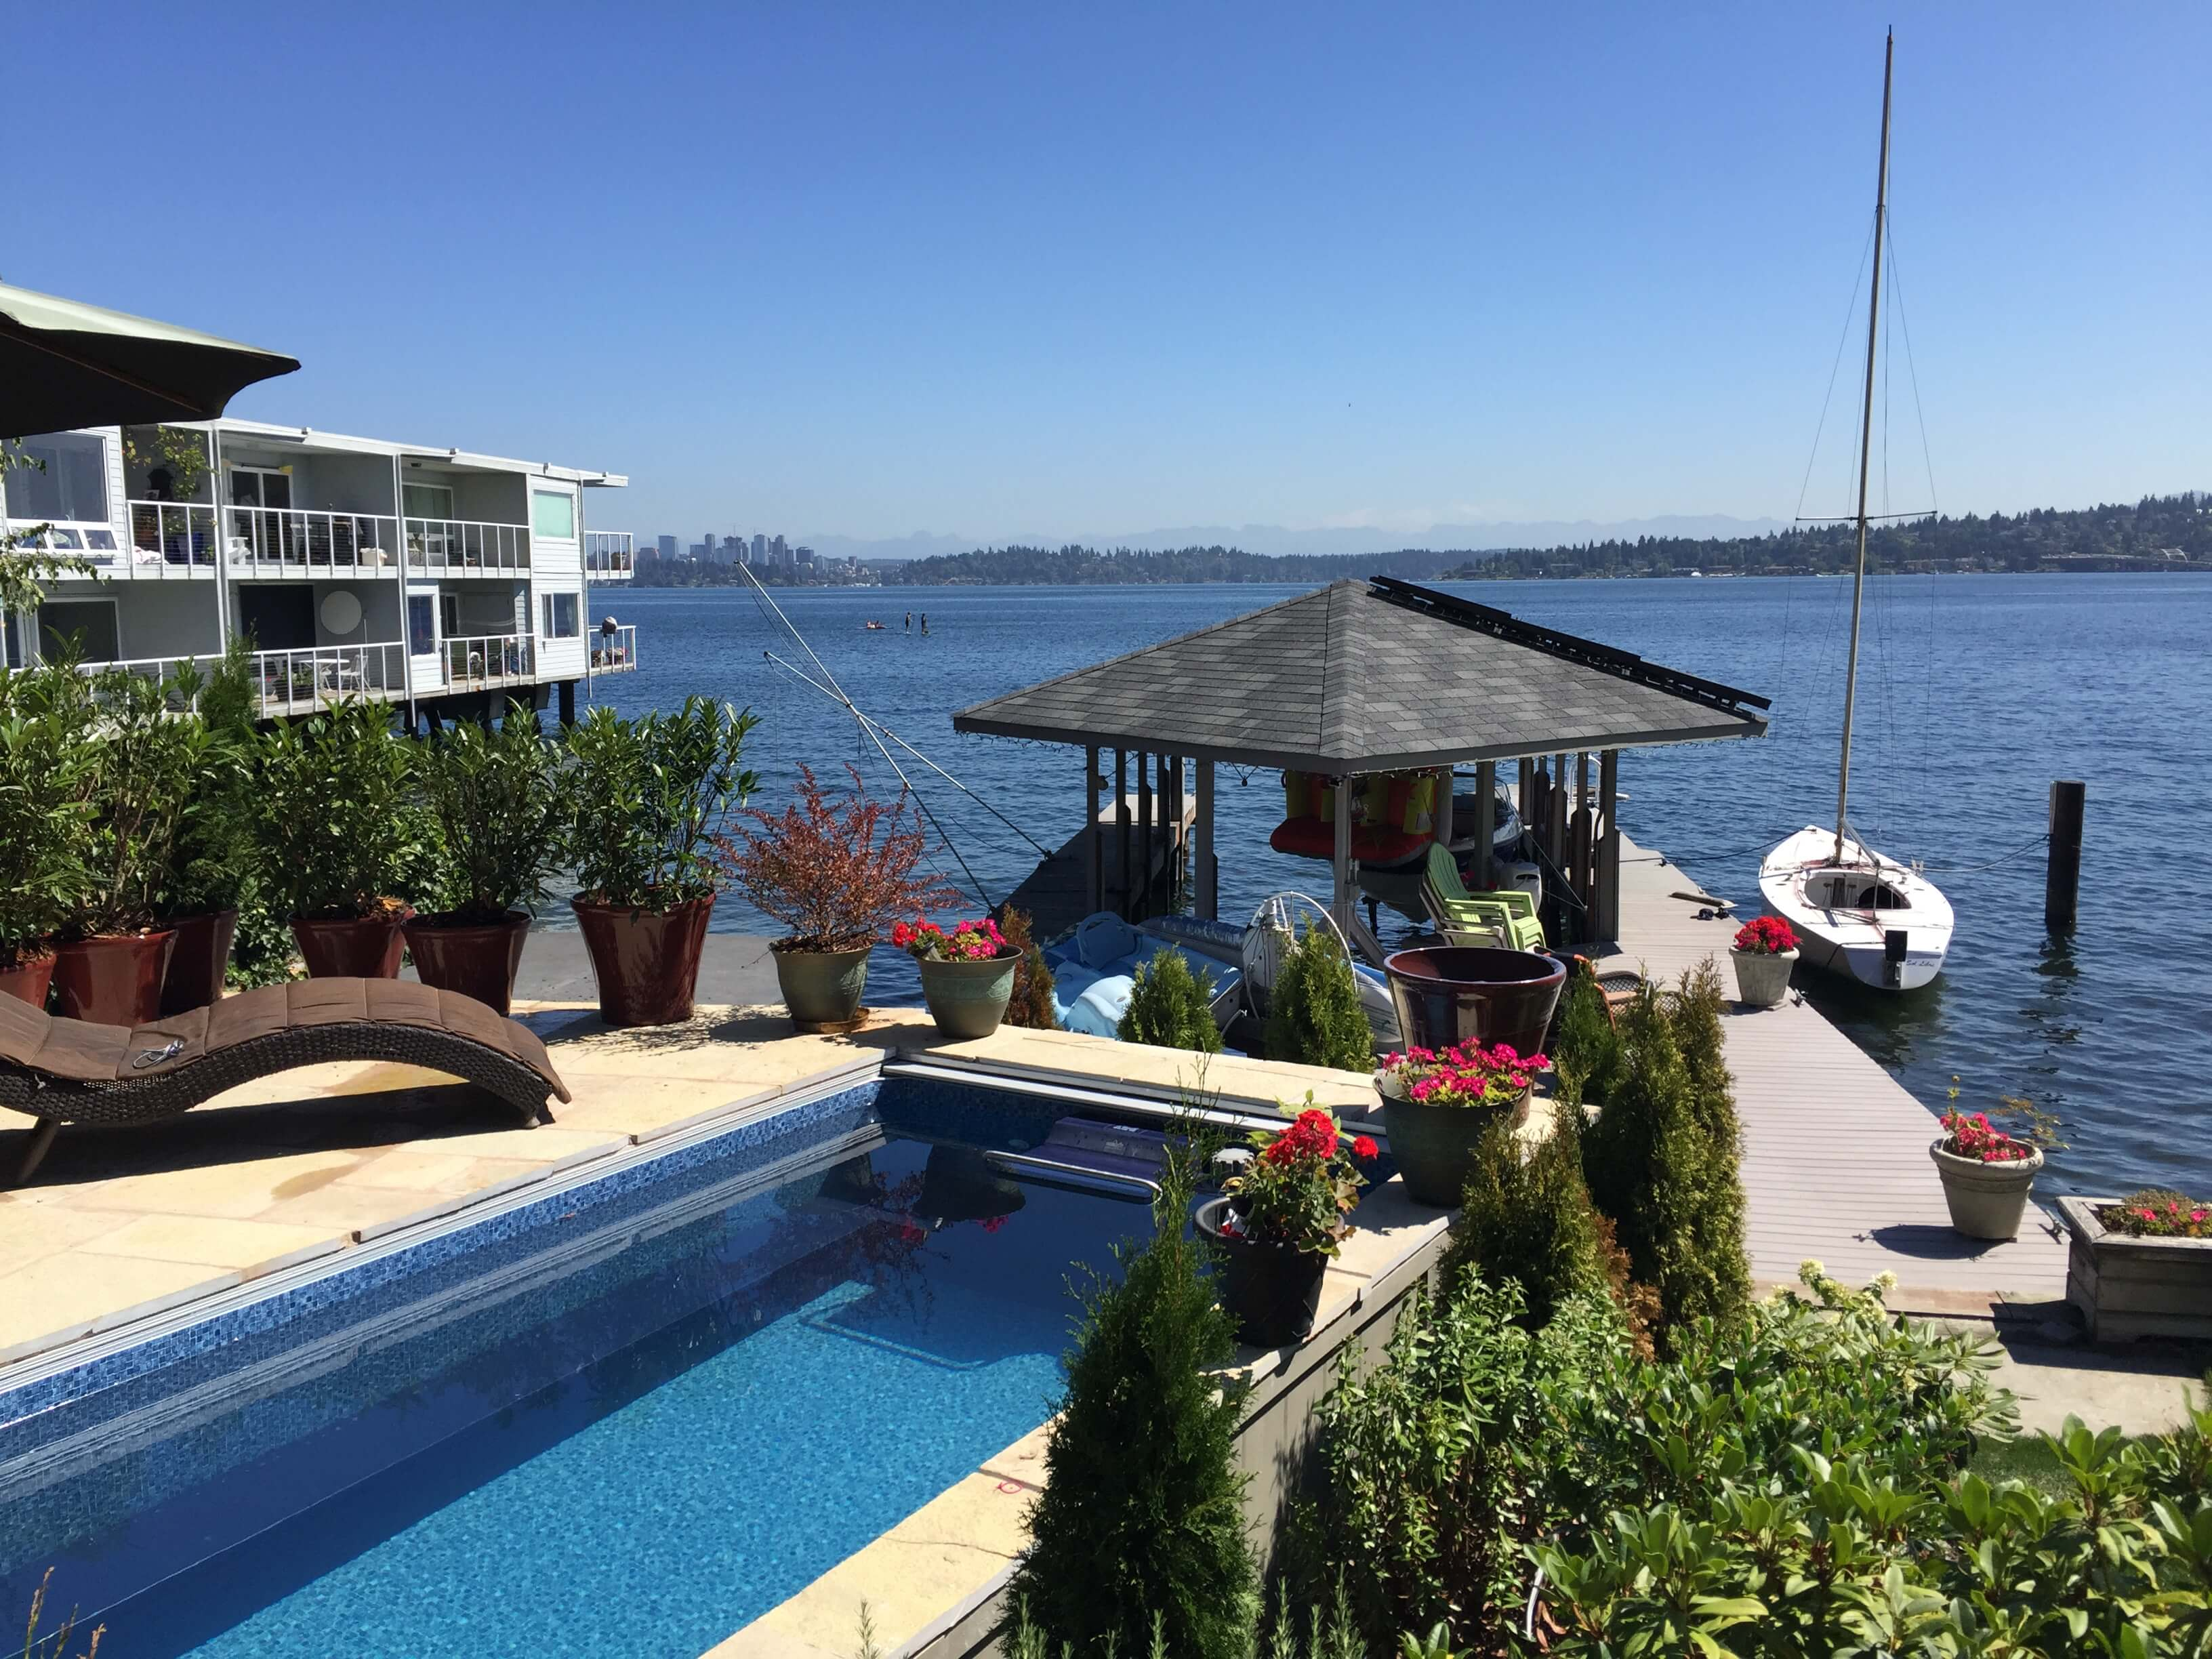 a fully in-ground Endless Pool alongside Lake Washington